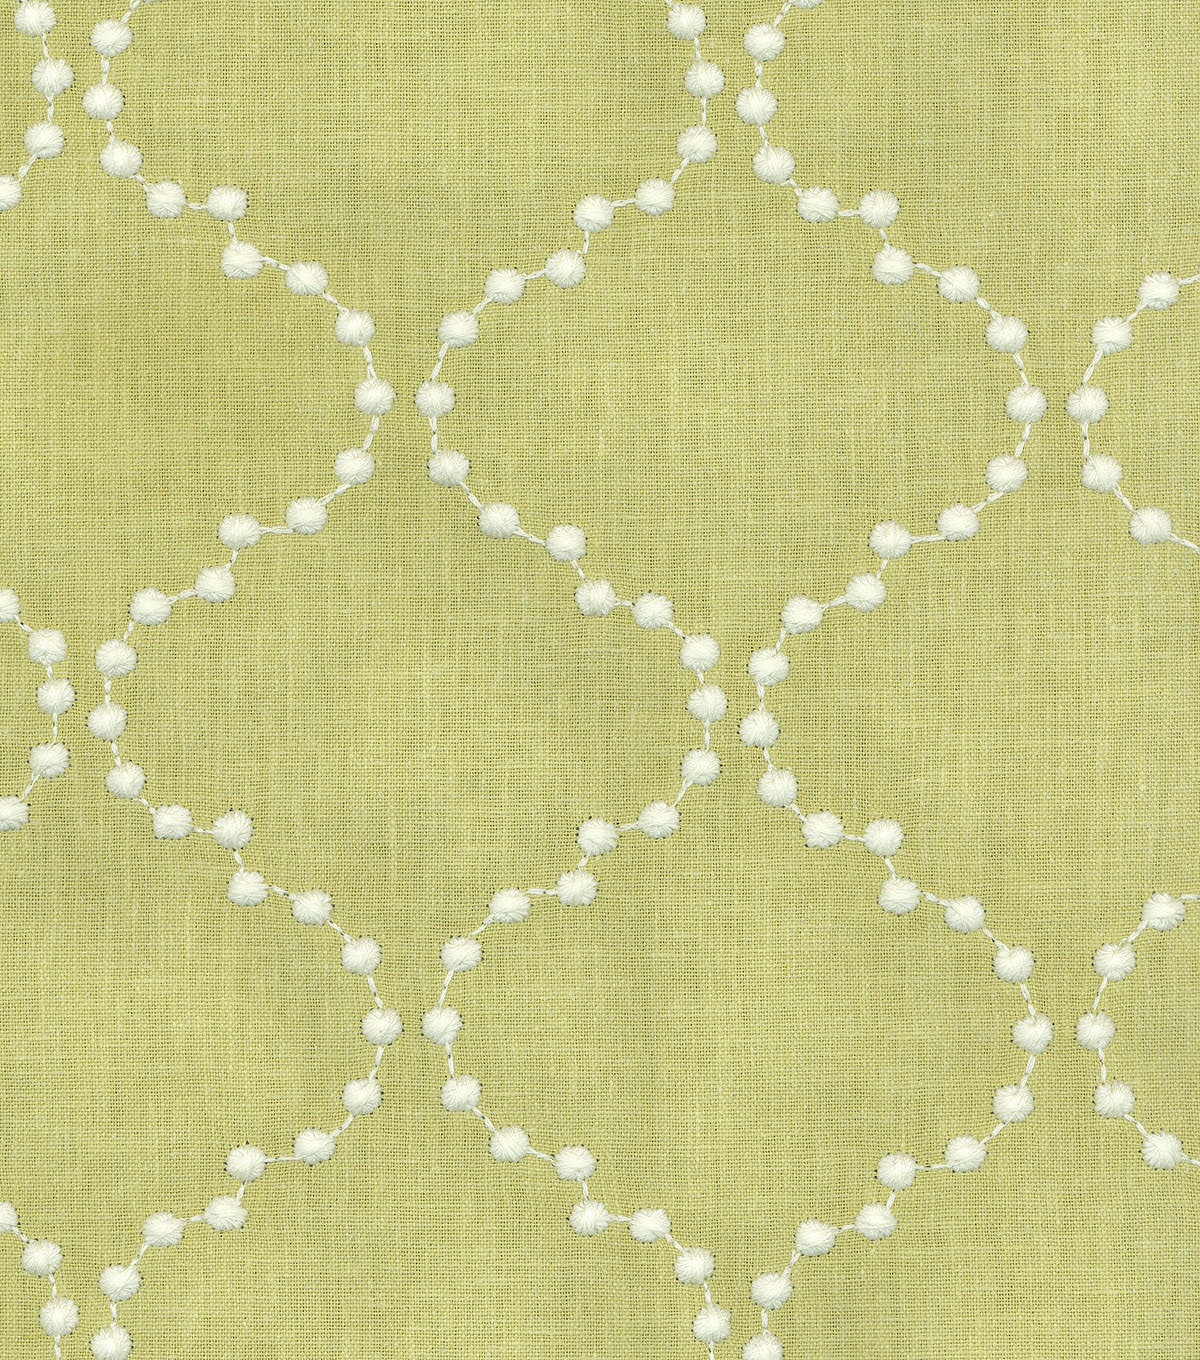 "HGTV Home Upholstery Fabric 55""-Pearl Drop Emb/Celery"